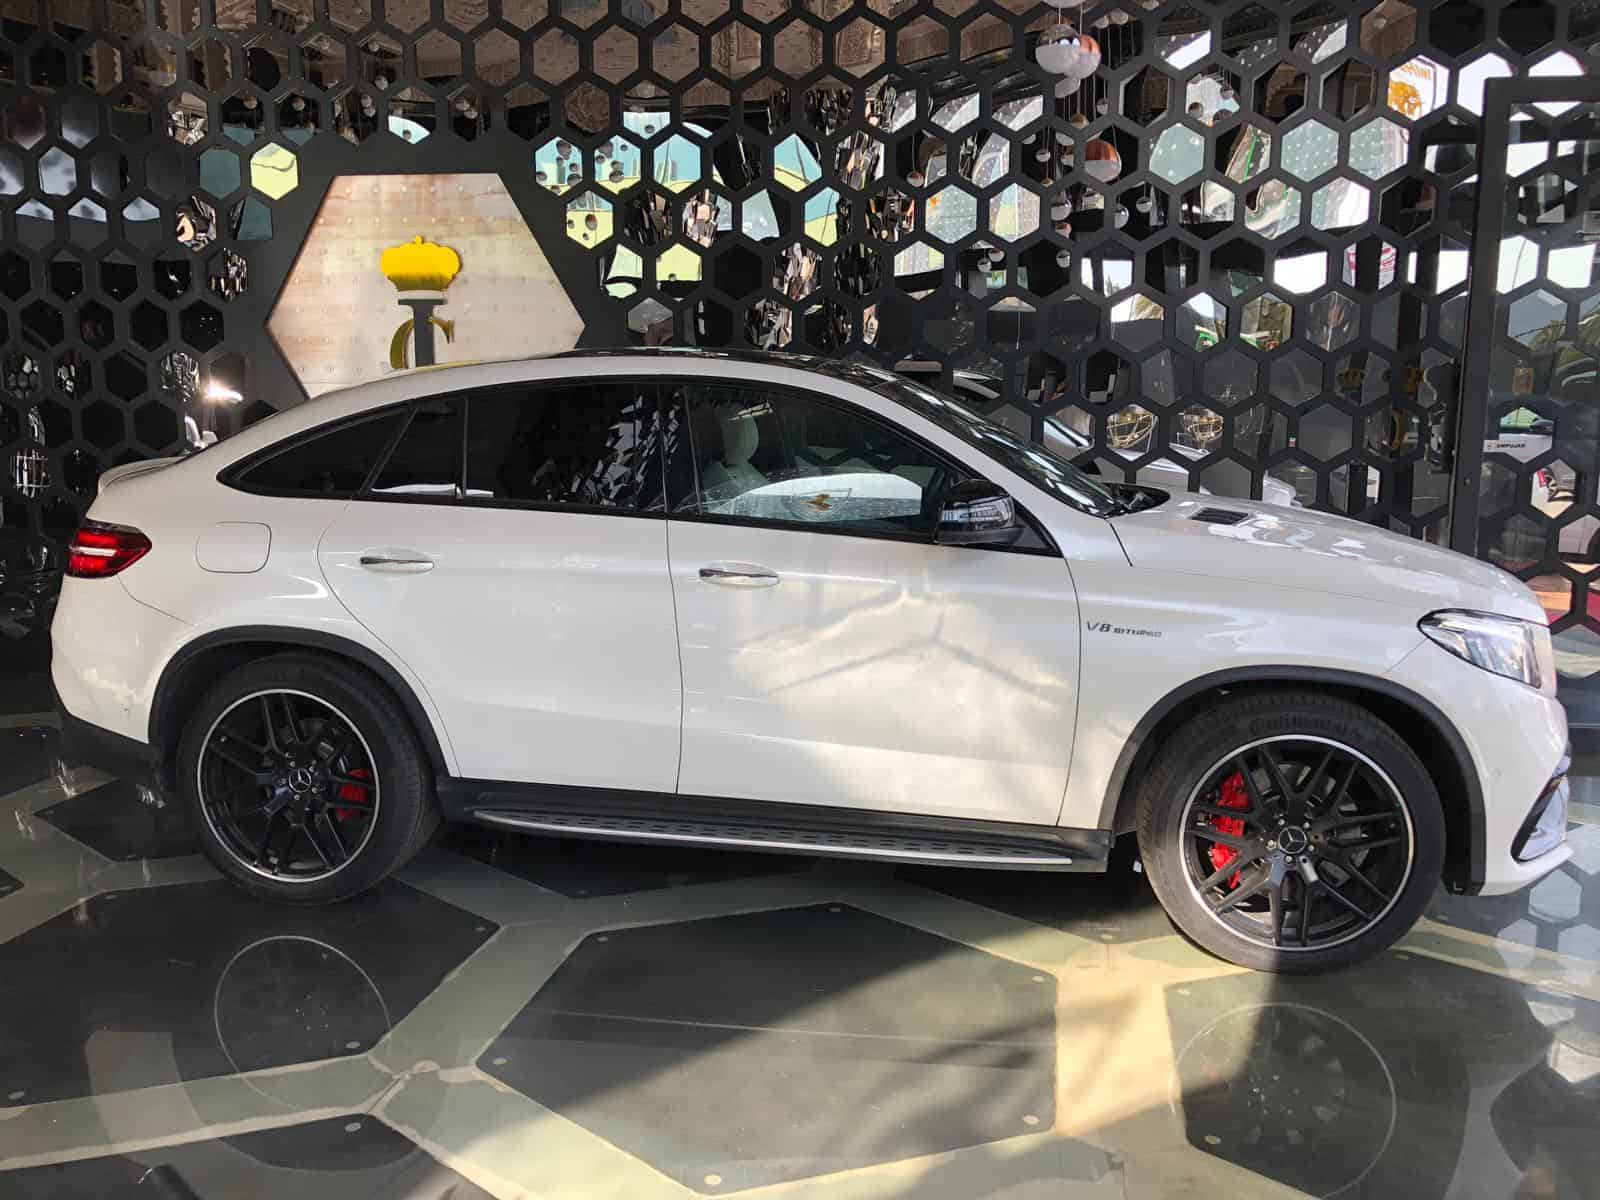 Mercedes Benz GLE 63 AMG S 4Matic Coupe